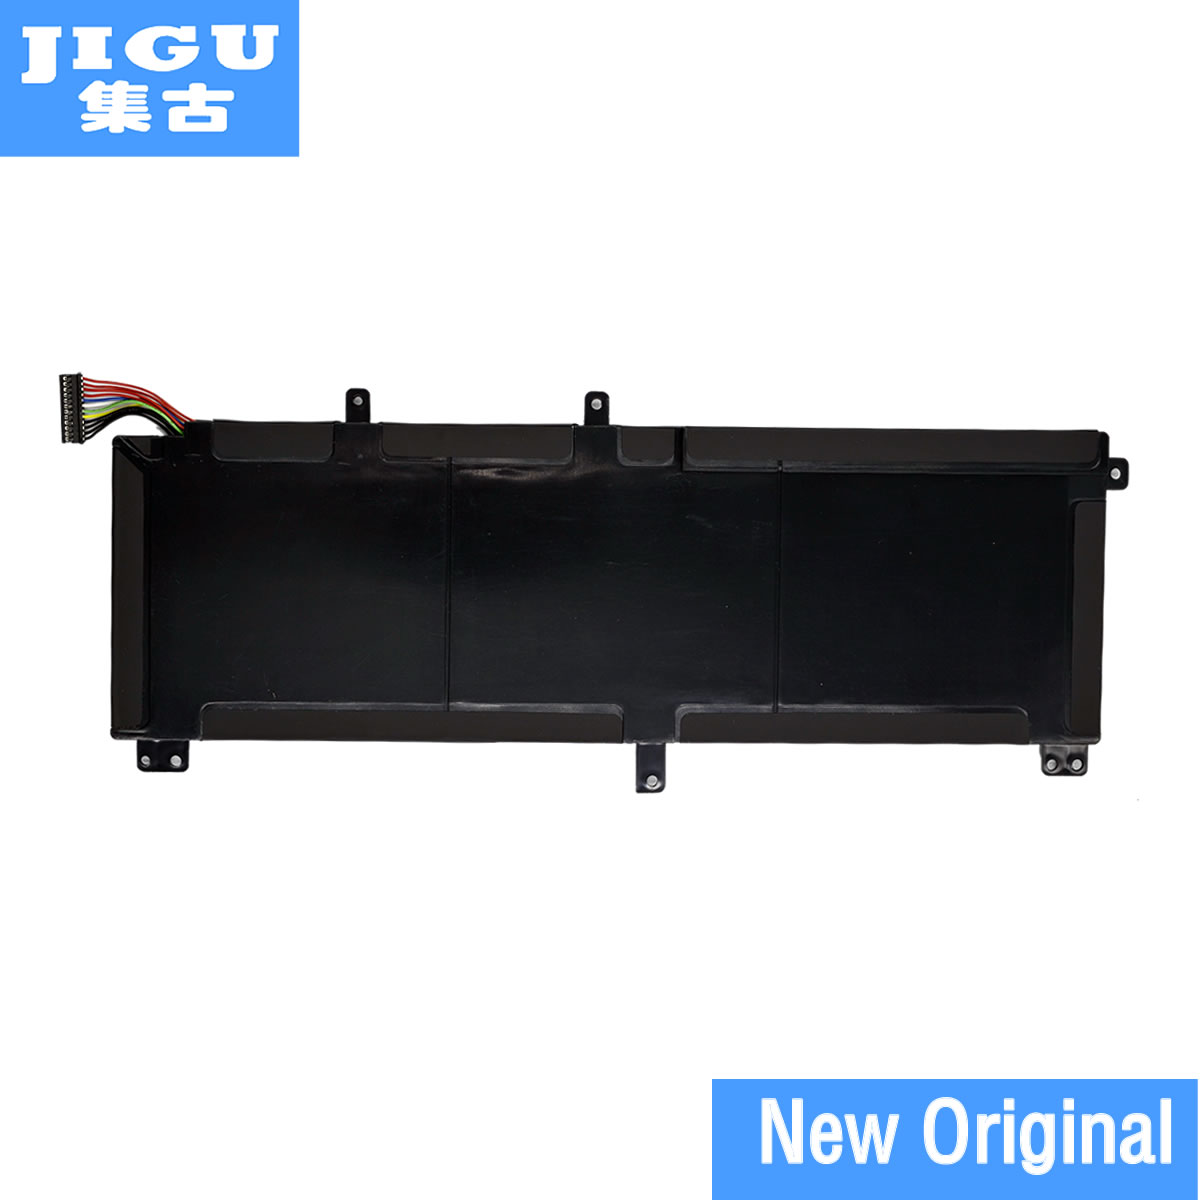 все цены на  JIGU H76MV OH76MV T0TRM TOTRM Y758W Original Laptop Battery for DELL Precision M3800 XPS 15 9530  онлайн